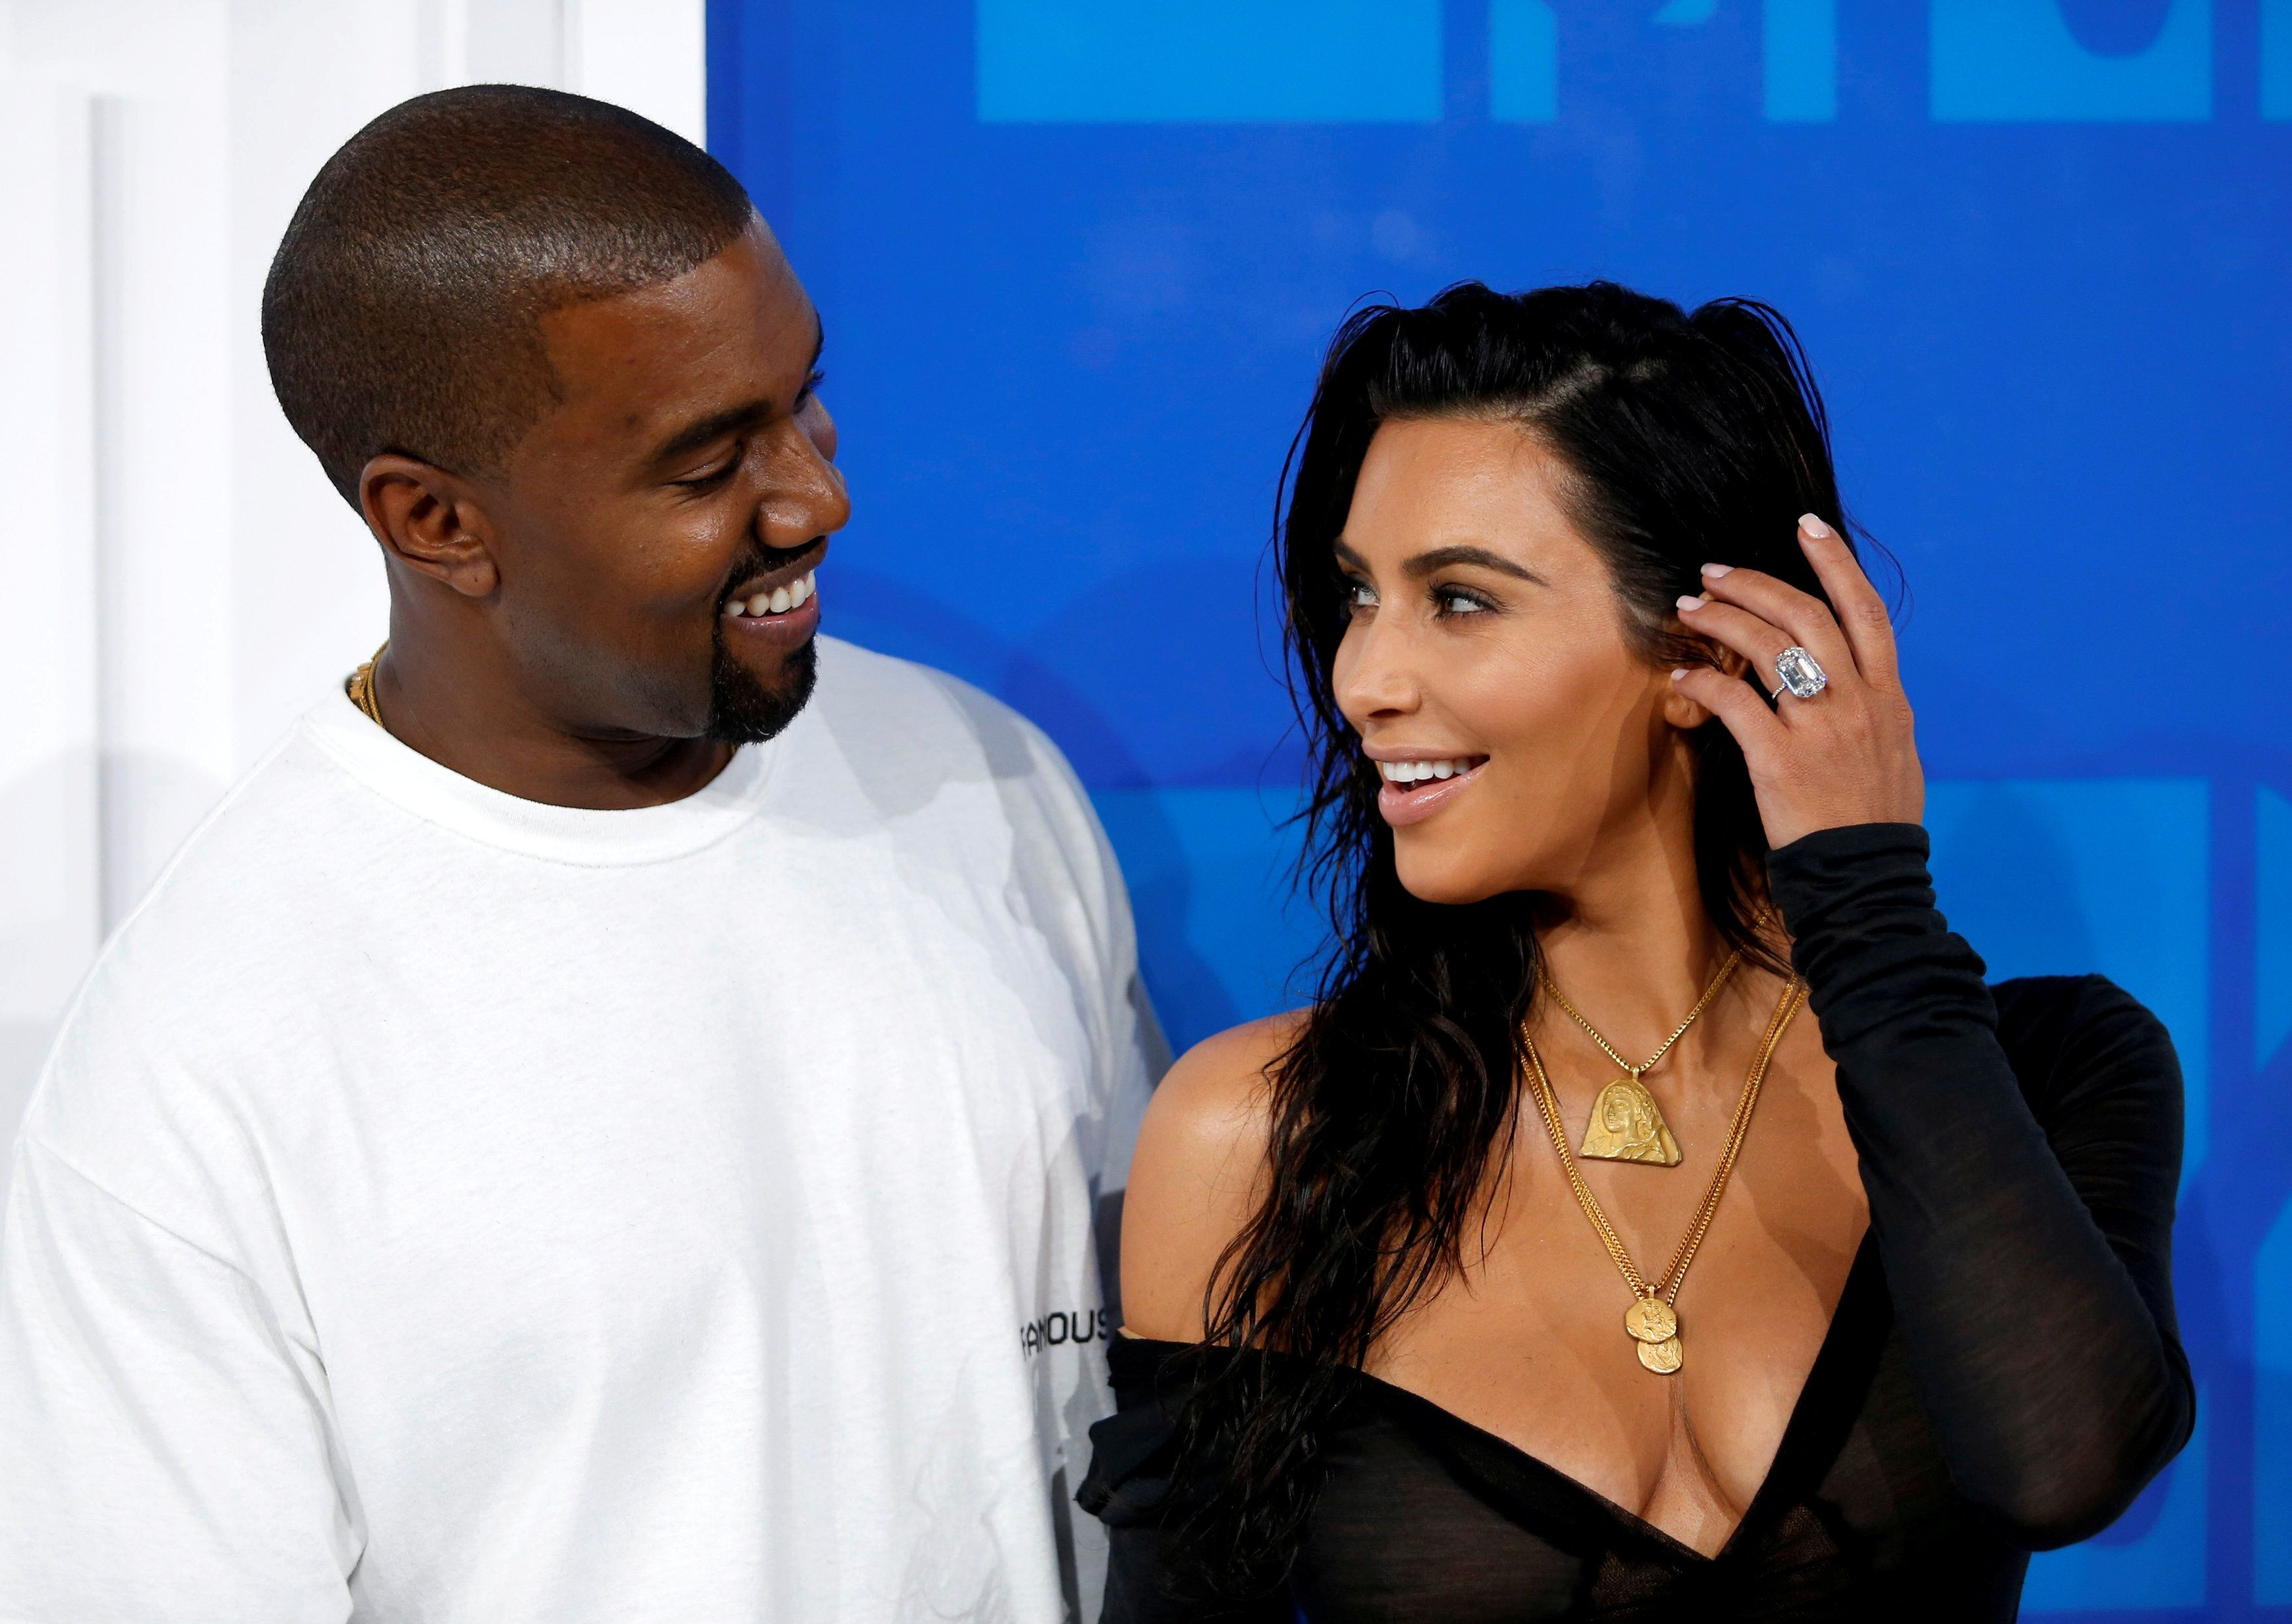 FILE PHOTO - Kim Kardashian and Kanye West arrive at the 2016 MTV Video Music Awards in New York, U.S., August 28, 2016. REUTERS/Eduardo Munoz/File Photo